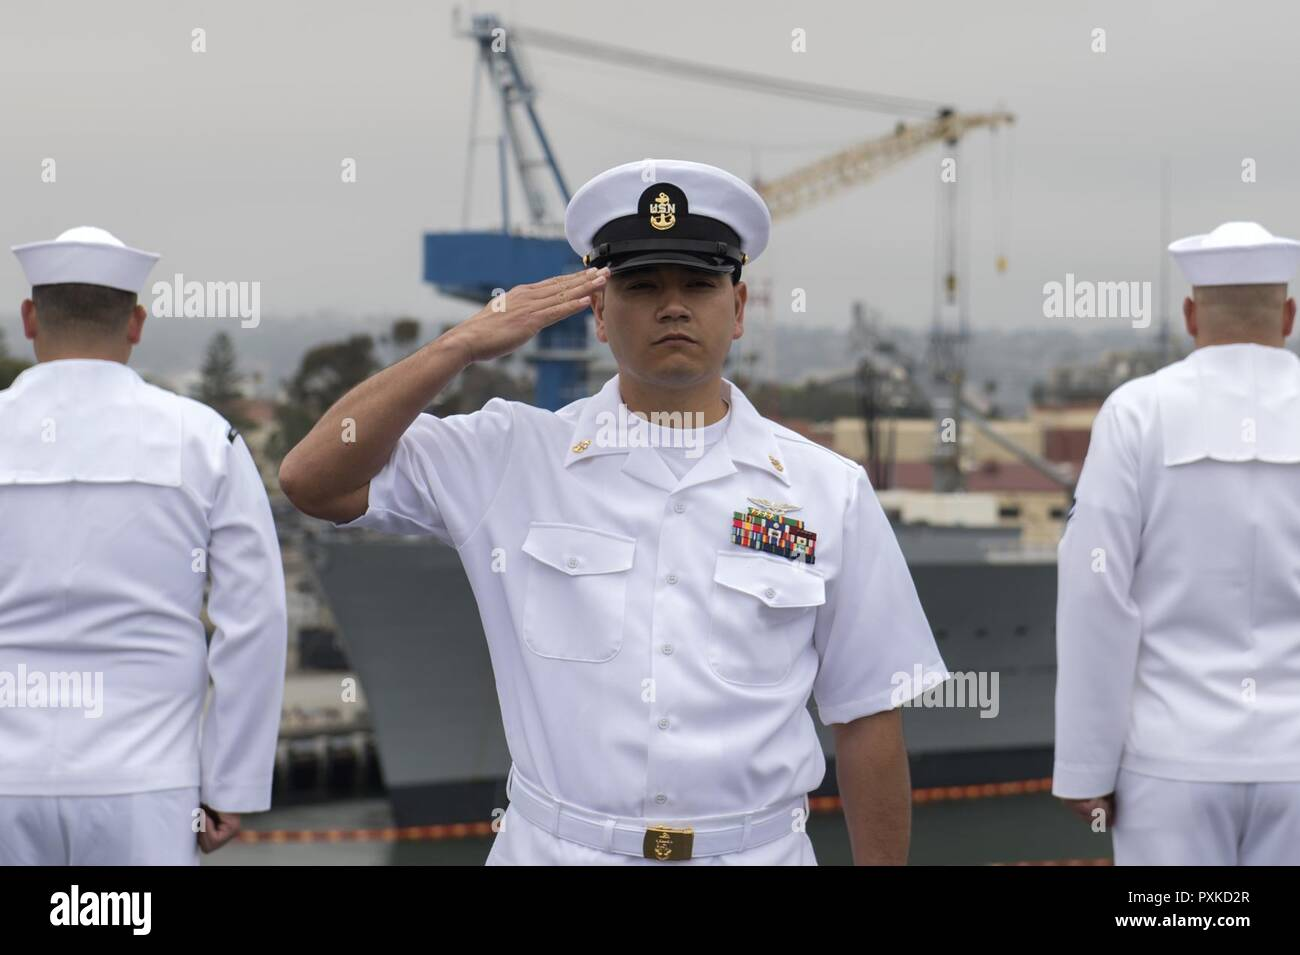 SAN DIEGO (June 5, 2017)  Chief Aviation Machinist's Mate Rodrigo Zurita renders honors to the USS Midway (CV 41) Aircraft Carrier Museum as the aircraft carrier USS Nimitz (CVN 68) passes on the 75th anniversary of the Battle of Midway, June 5, 2017, in San Diego. Nimitz is joining Carrier Air Wing 11, Destroyer Squadron 9 and the rest of Carrier Strike Group 11 to depart on a regularly scheduled deployment. - Stock Image